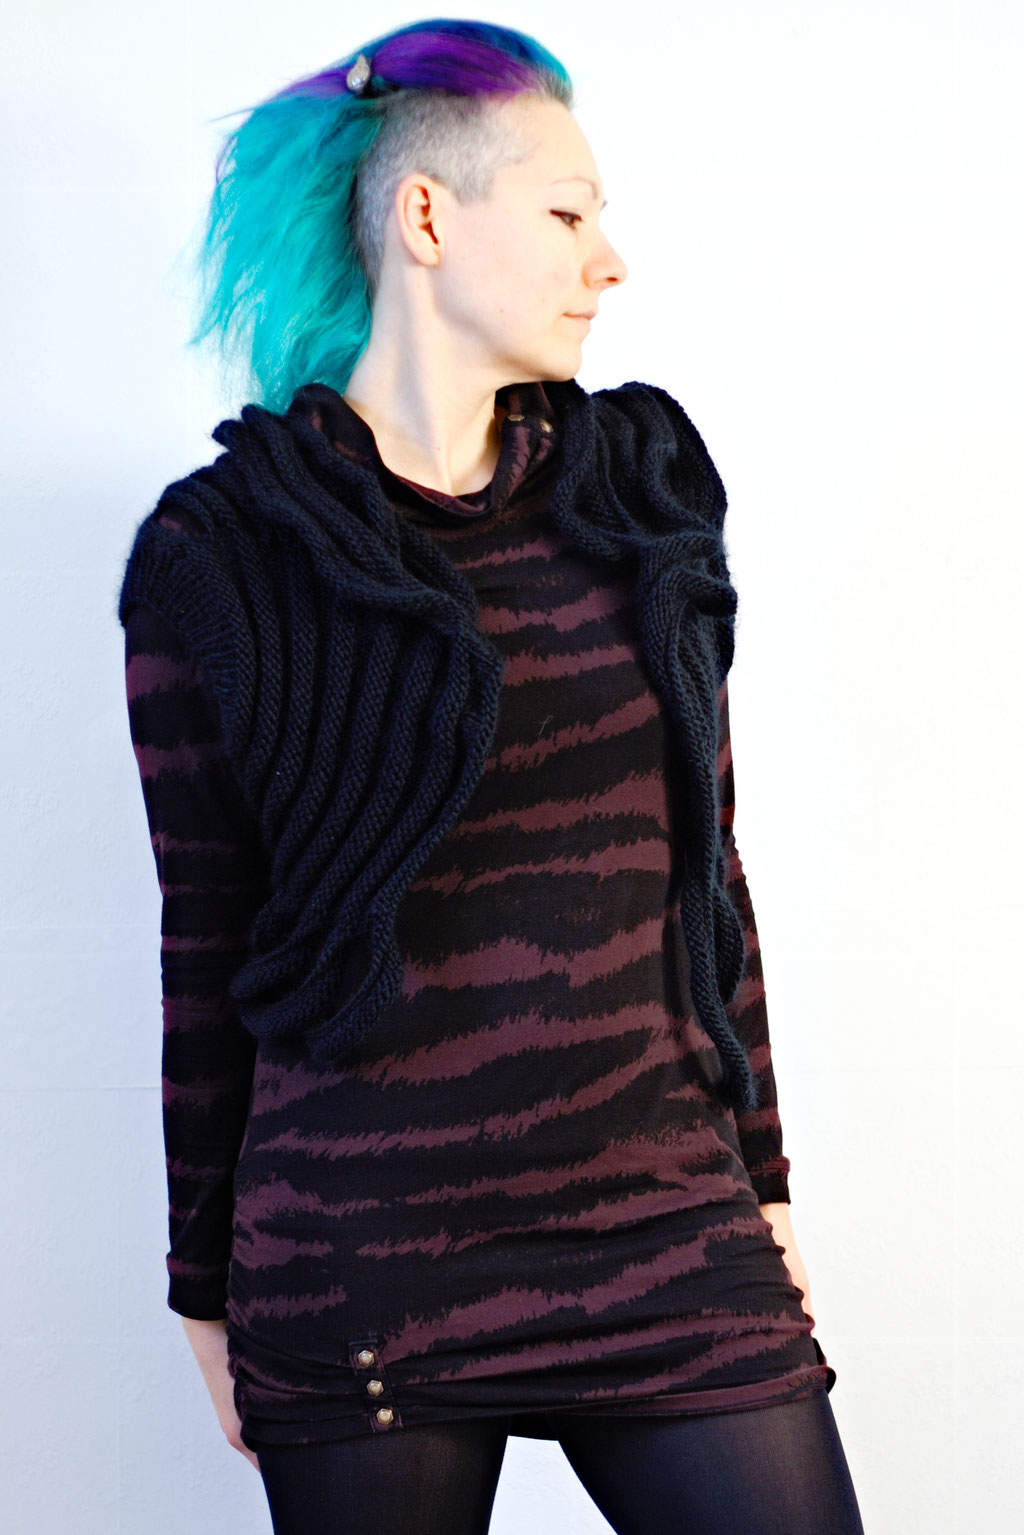 Zombie knitted vest & Crochet crop top of dreams - black knit vest + zebra dress - Zebraspider Eco Anti-Fashion Blog